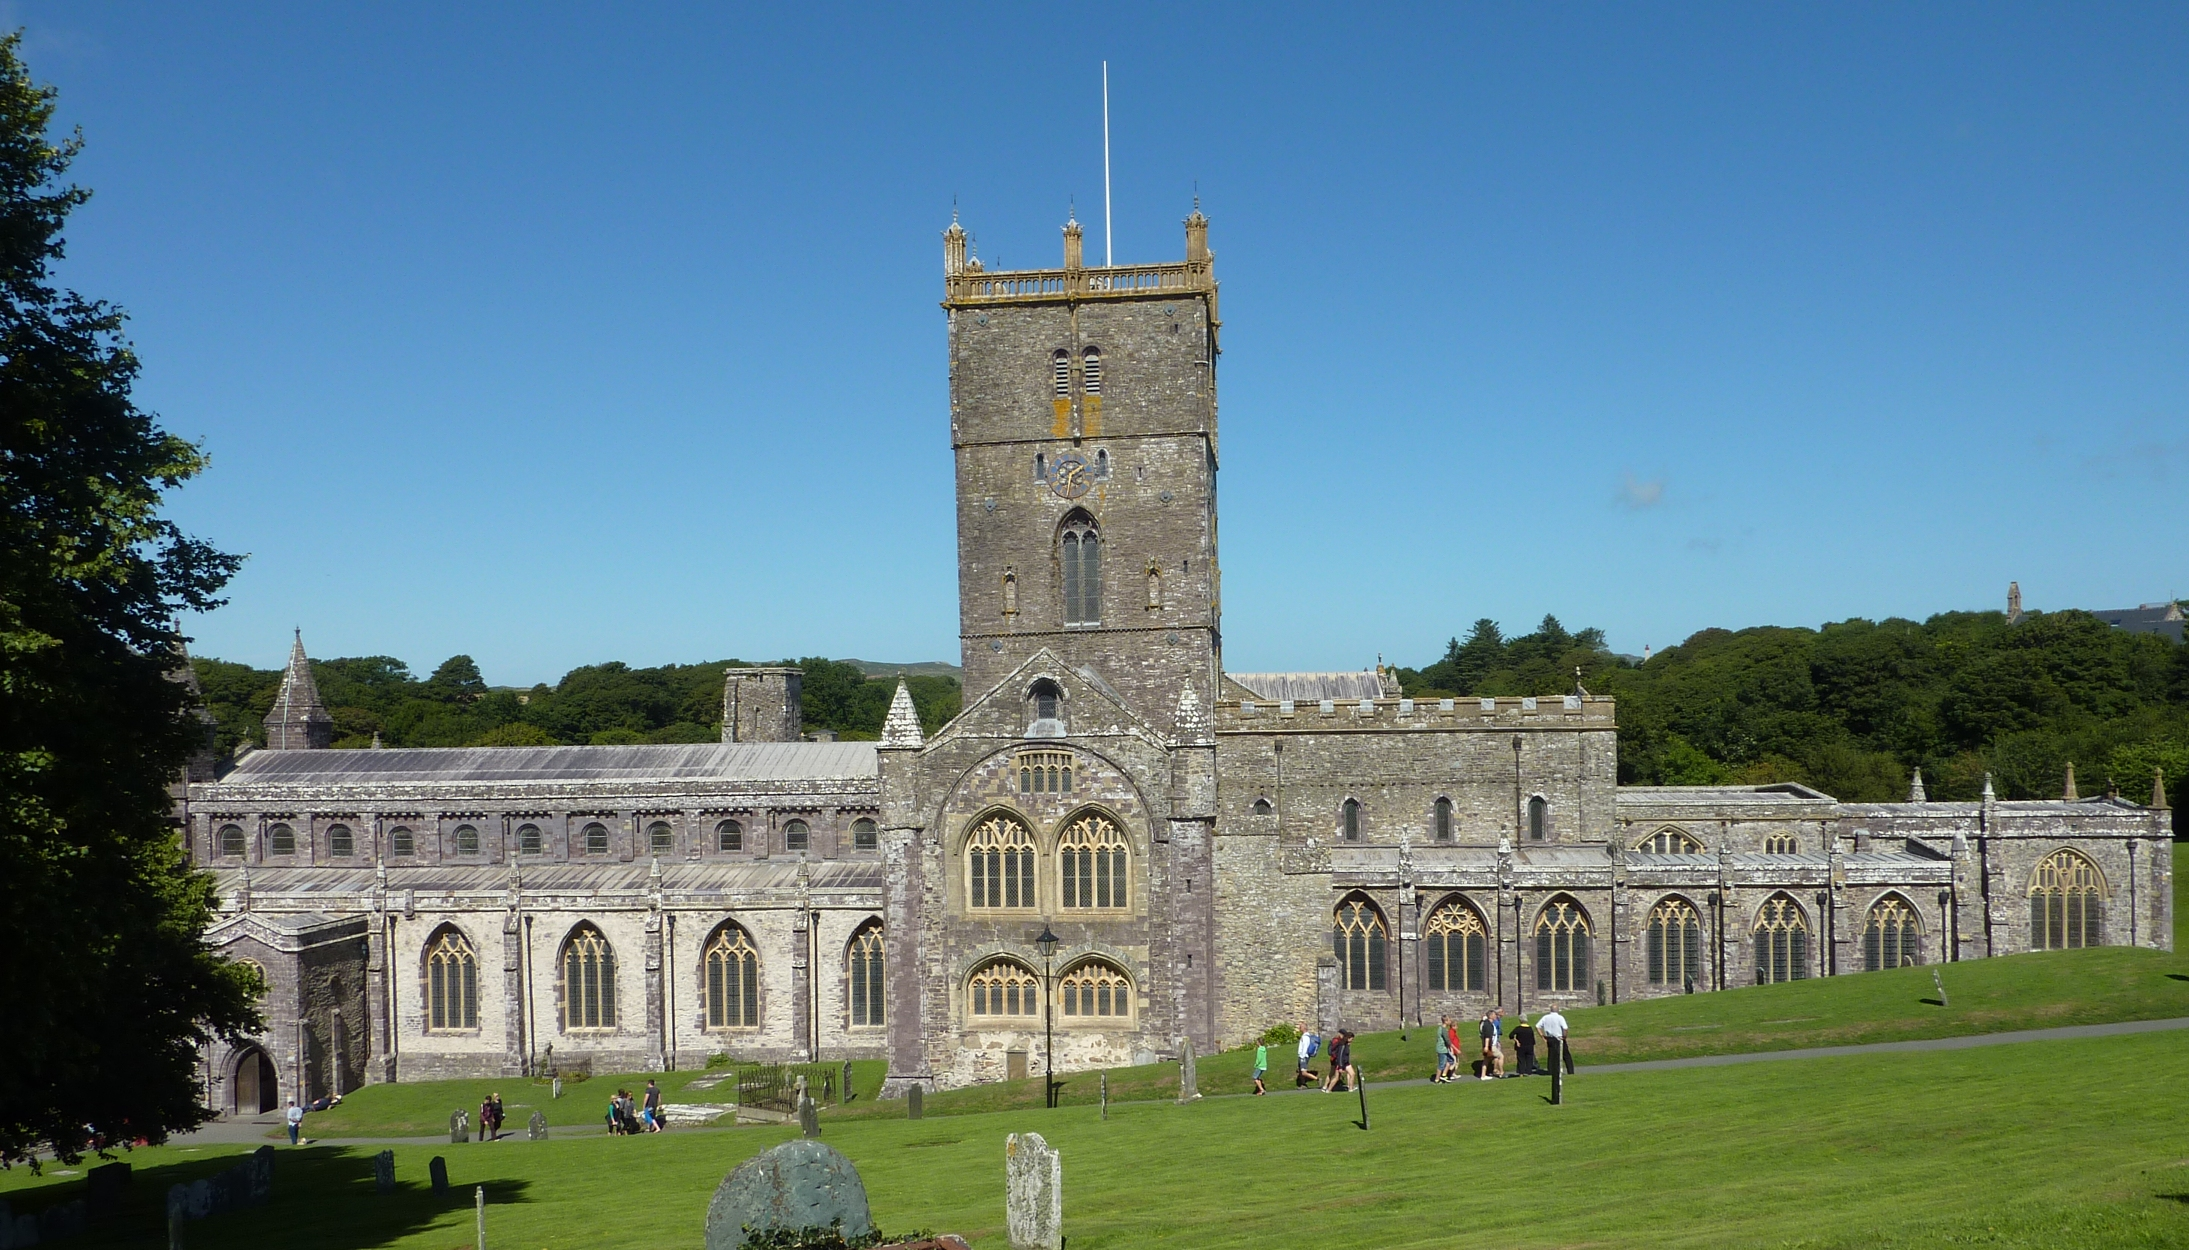 St. David's Cathedral South Wales, St Davids: holiday cottages, hotels, camping & things to do